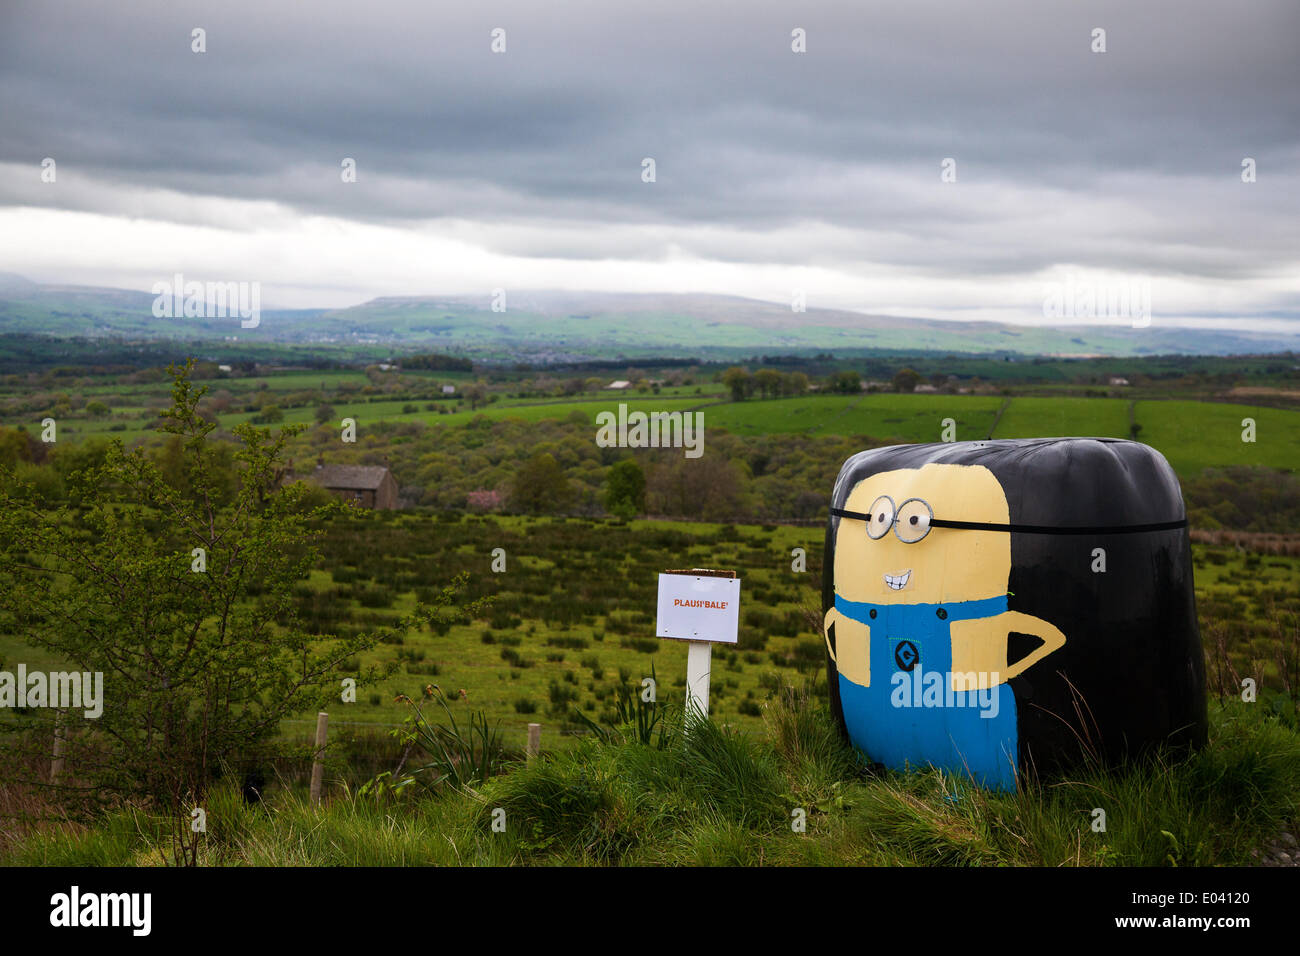 Wray, Lancaster, 1st May 2014.  'Despicable Me' dry hay bales wrapped in black plastic, with a sign 'Plaus 'able' Stock Photo